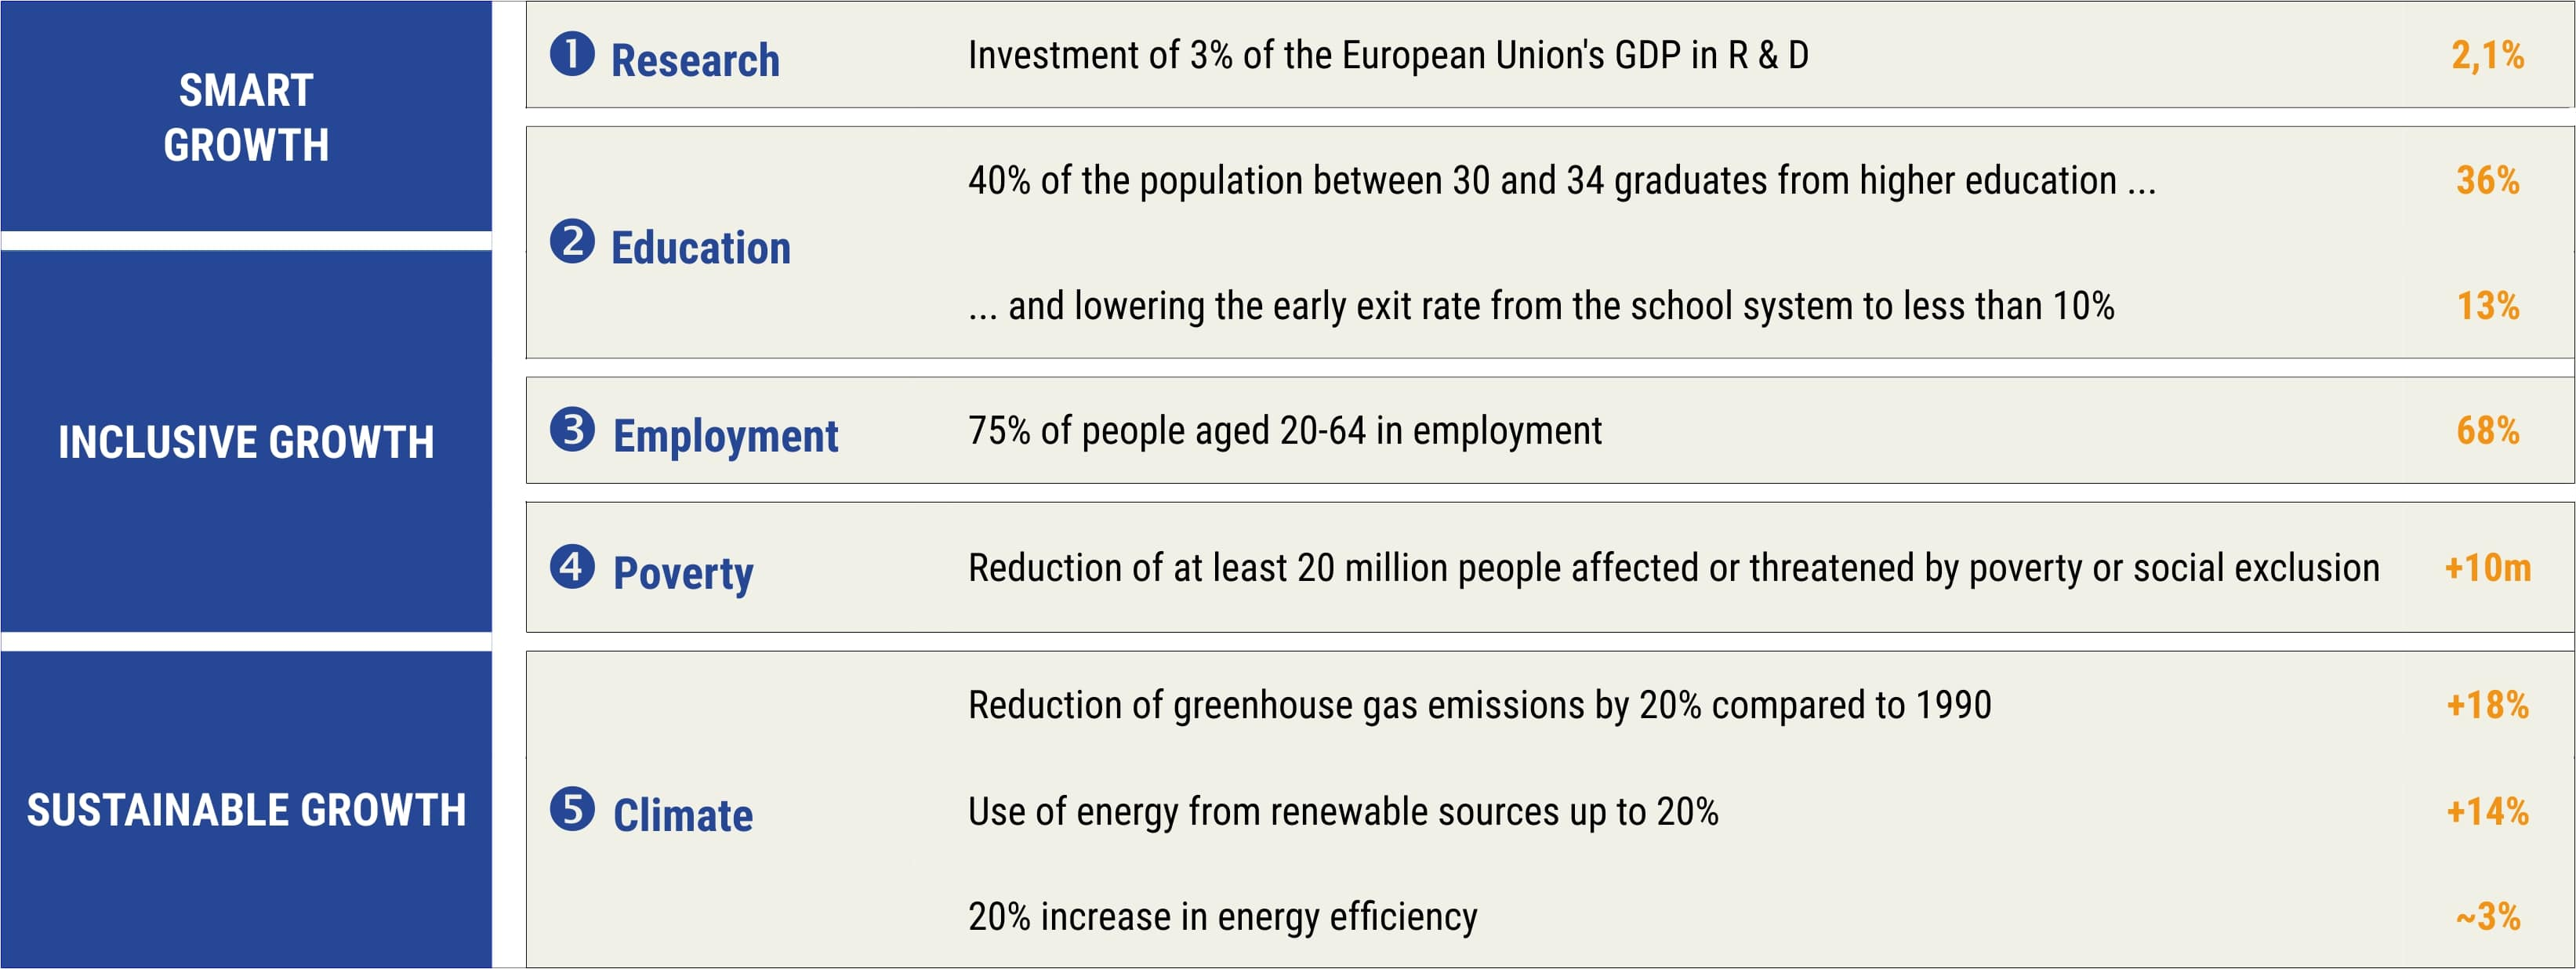 argets: Employment - 75% of people aged 20–64 to be in work Research and development (R&D) - 3% of the EU's GDP to be invested in R&D Climate change and energy - greenhouse gas emissions 20% lower than 1990 levels - 20% of energy coming from renewables - 20% increase in energy efficiency Education - rates of early school leavers below 10% - at least 40% of people aged 30–34 having completed higher education Poverty and social exclusion - at least 20 million fewer people in – or at risk of – poverty/social exclusion